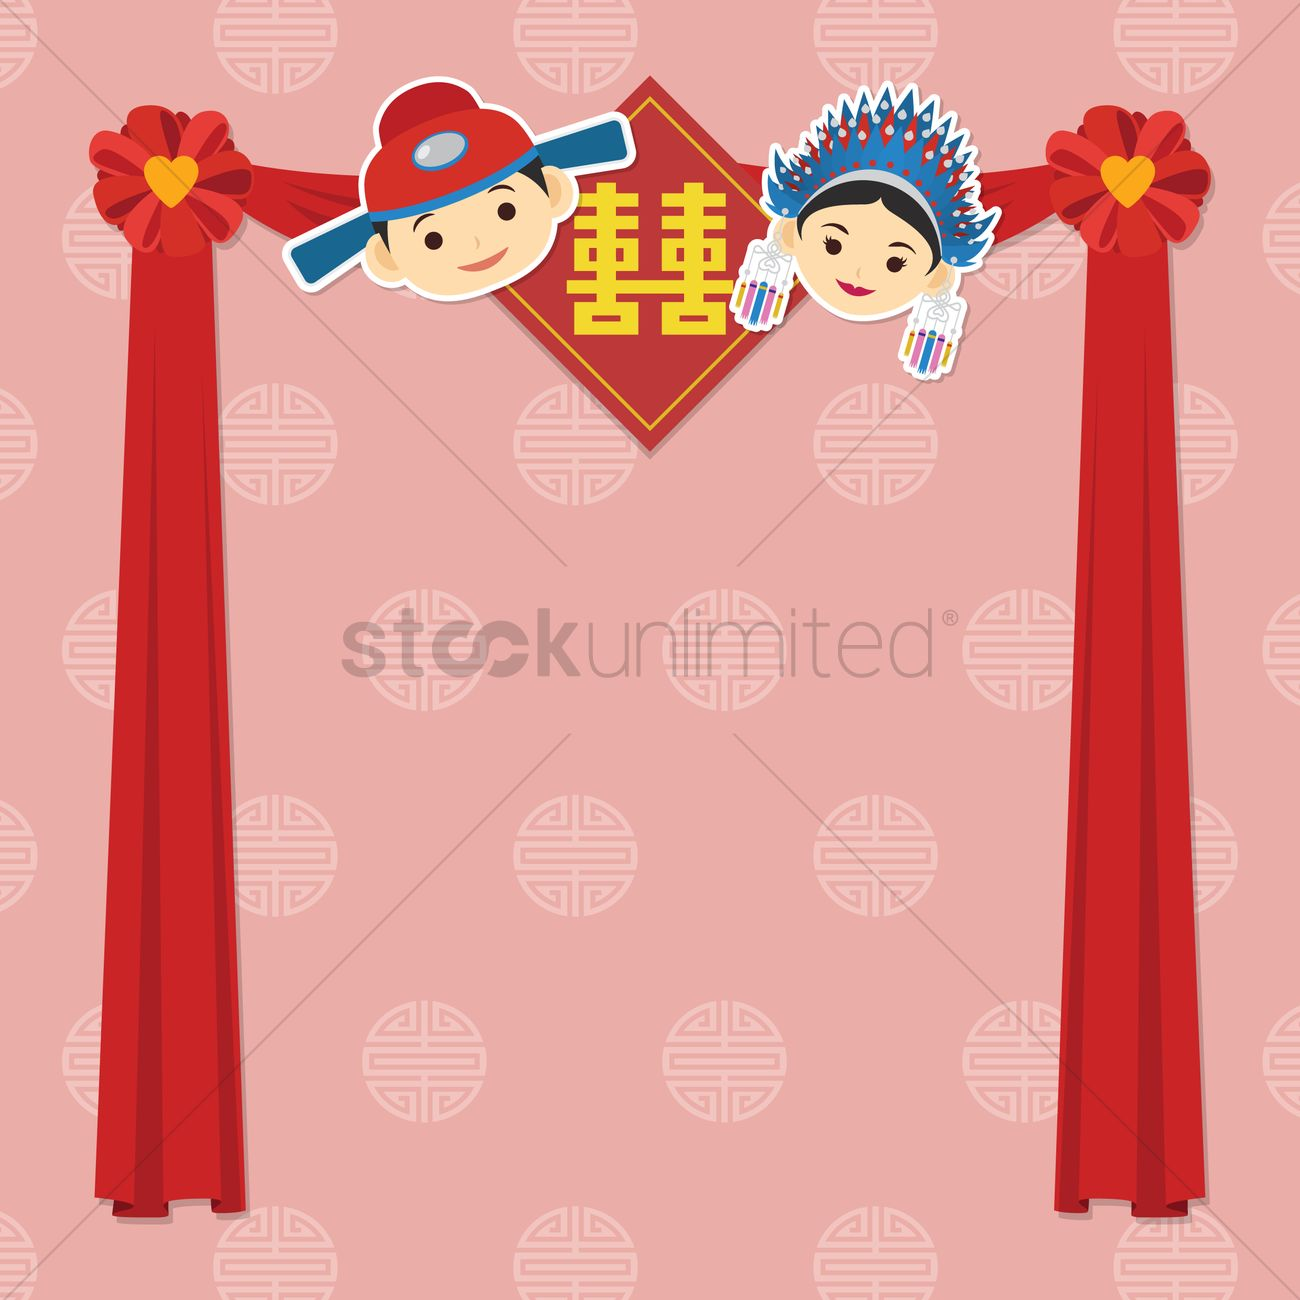 1300x1300 Chinese Wedding Invitation Card Design Vector Image